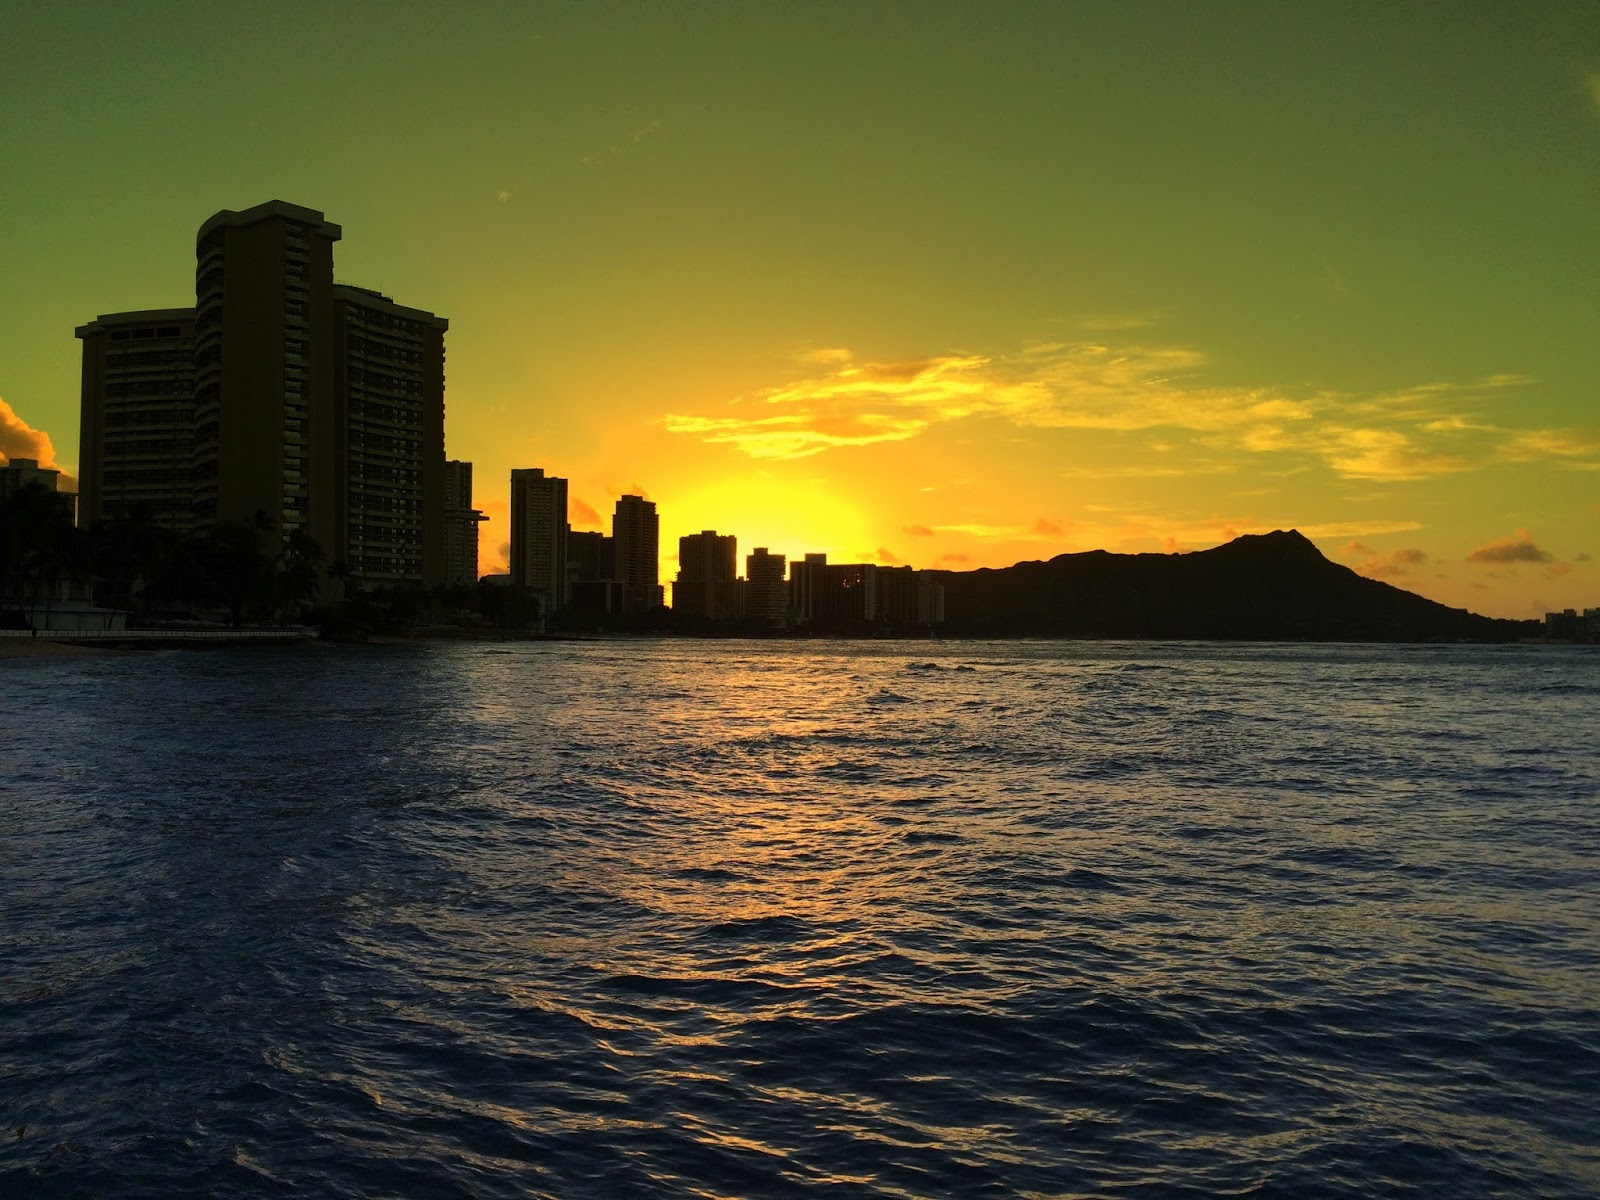 Aloha from Hawaii: Sunrise in Oahu